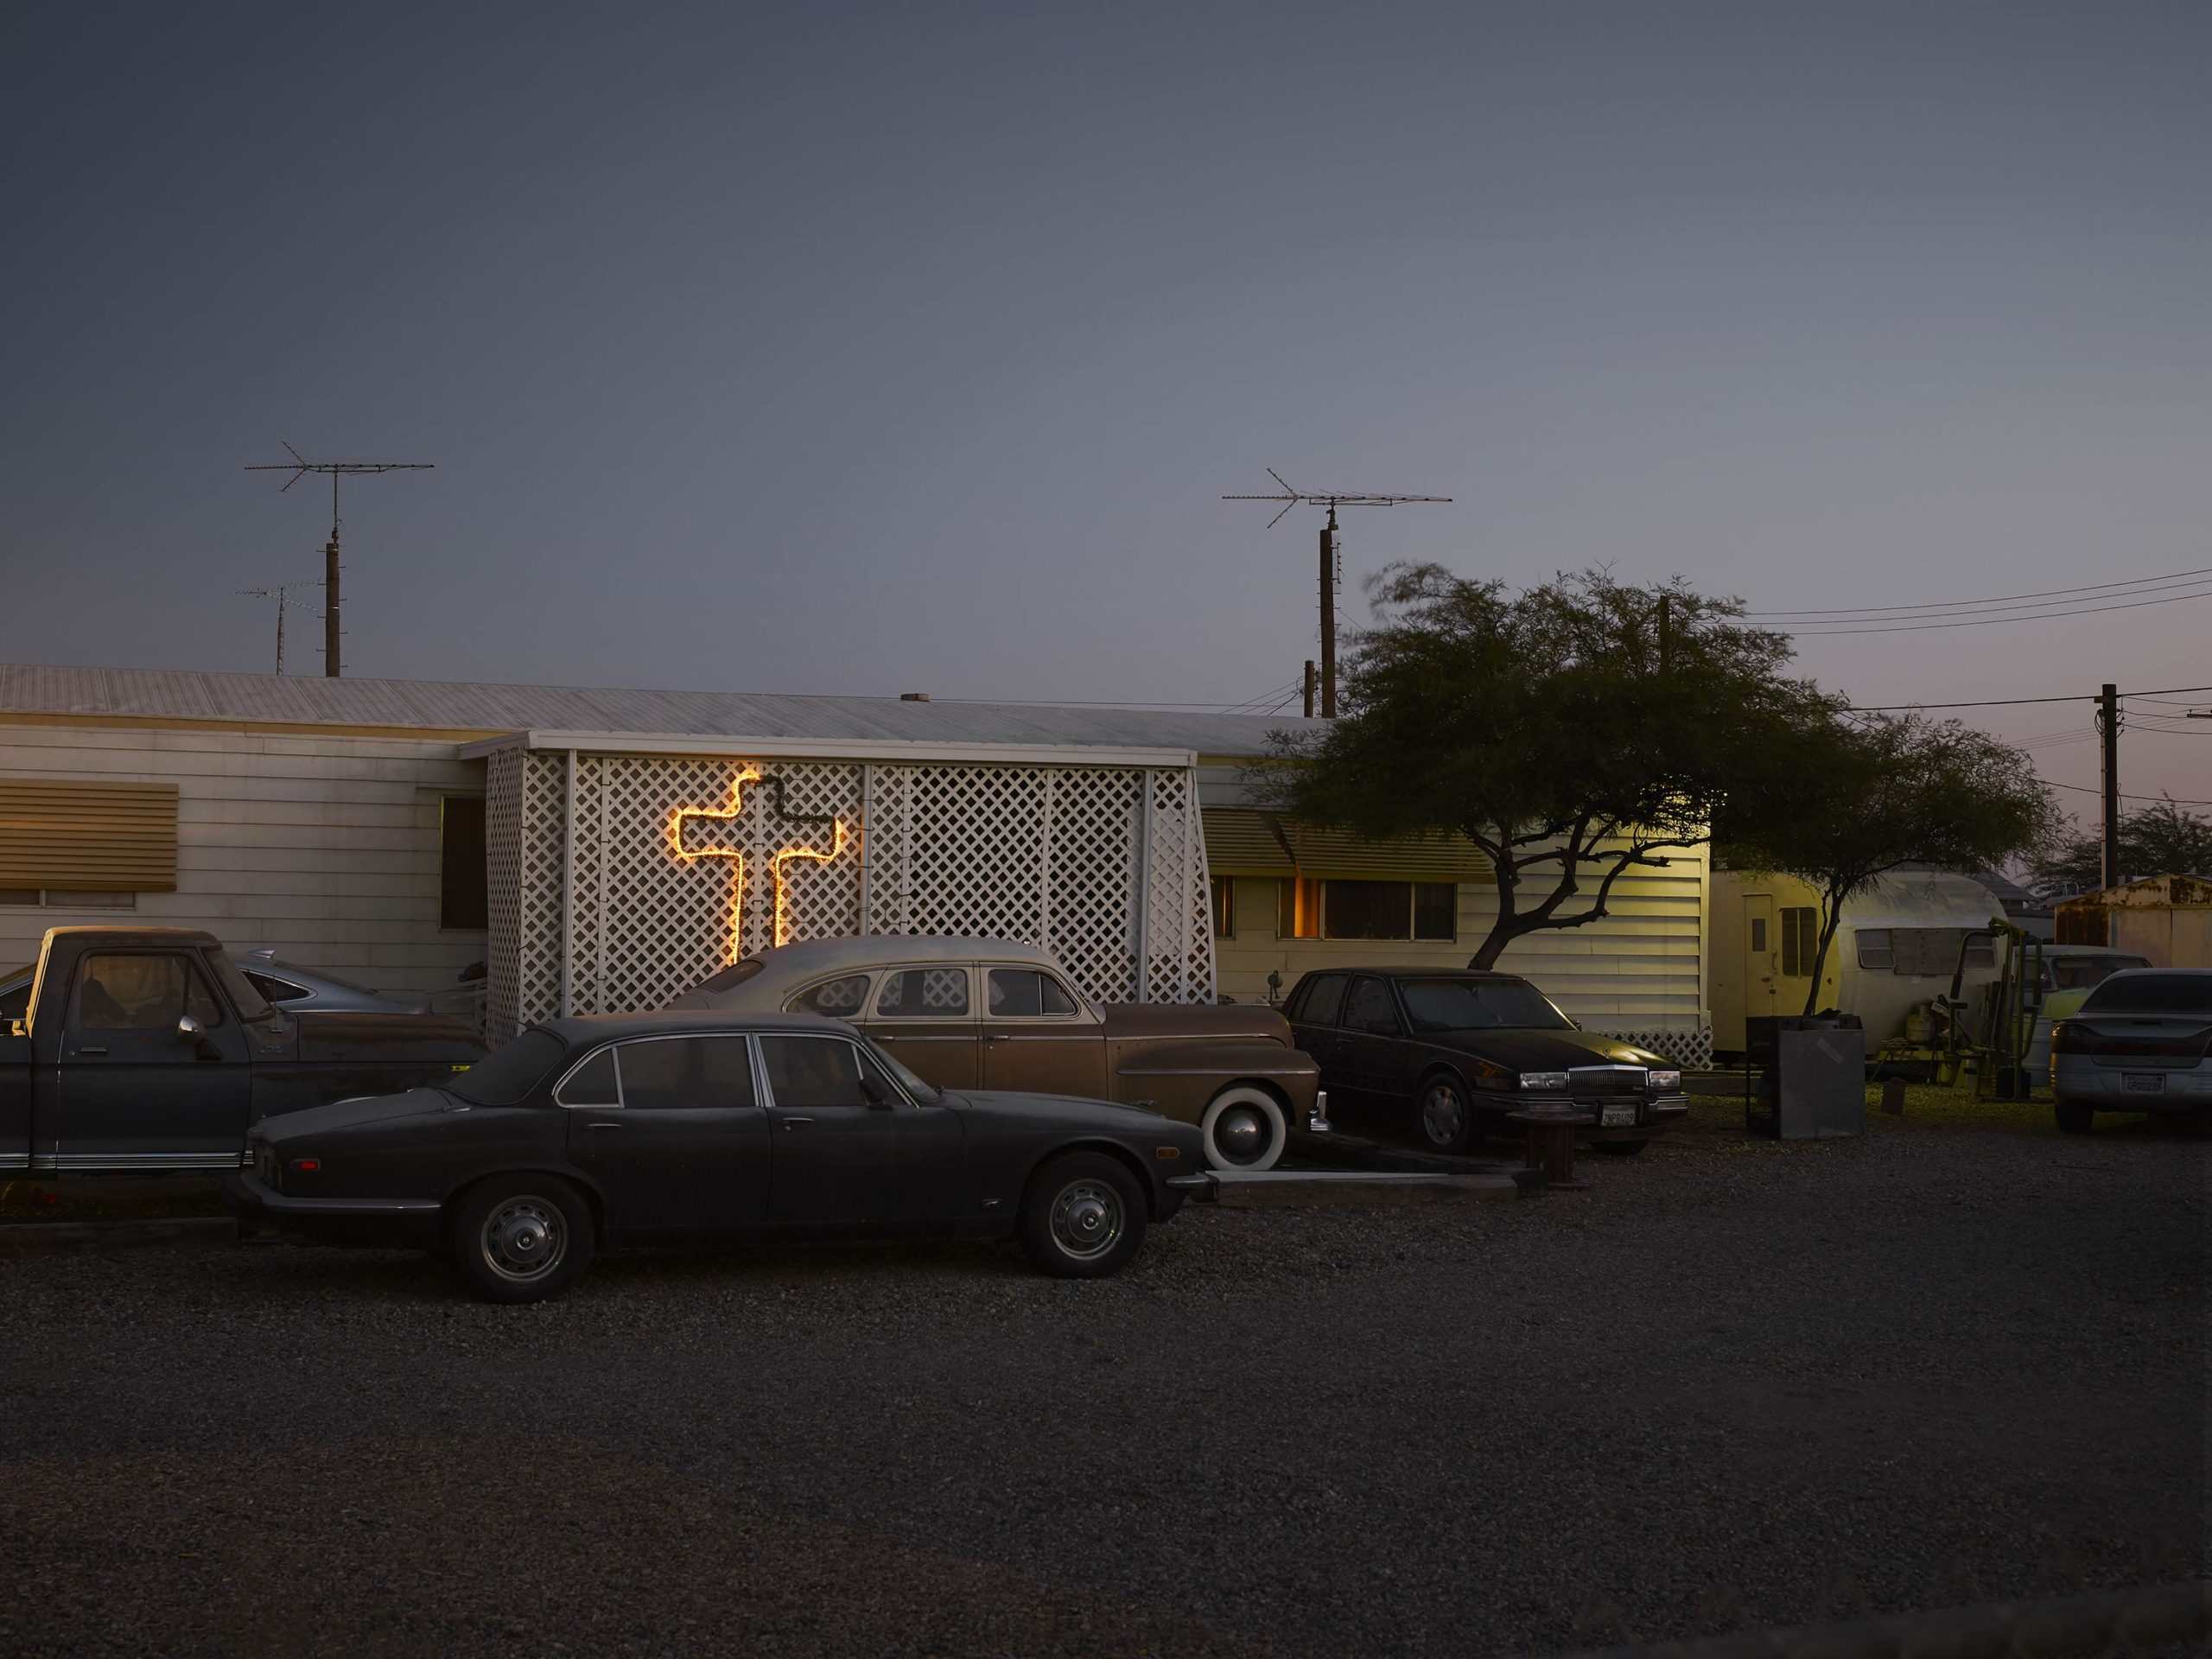 Esclavo Y Amo - Welcome To Bombay Beach Collection - Fine Art Photography by Toby Dixon